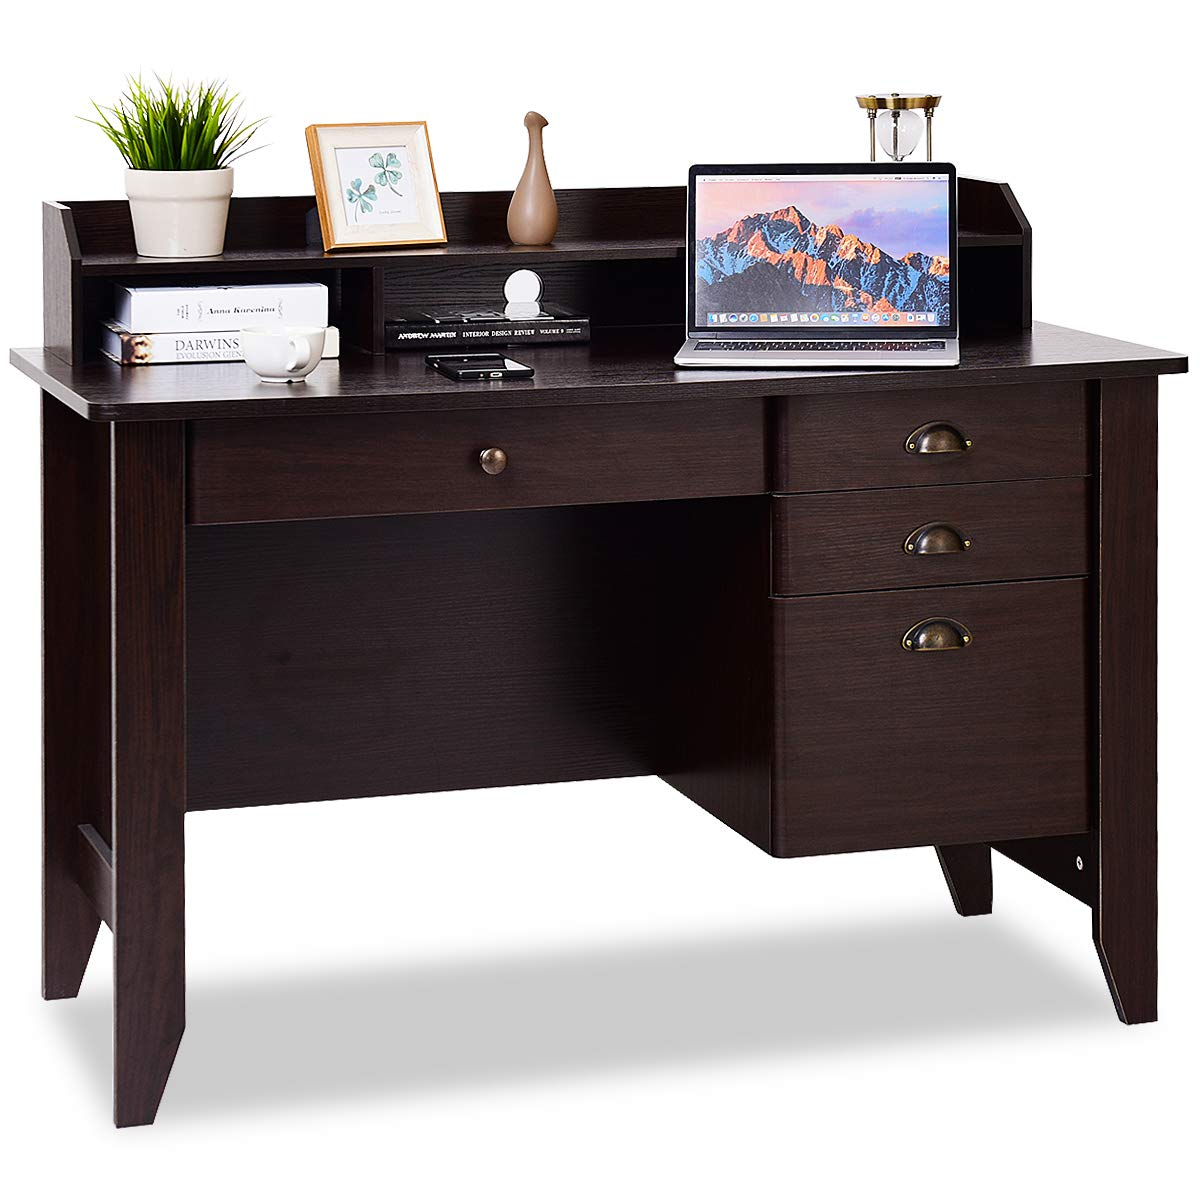 Tangkula Computer Desk, Home Office Desk, Wood Frame Vintage Style Student Table with 4 Drawers & Bookshelf, PC Laptop Notebook Desk, Spacious Workstation Writing Study Table (Coffee) by Tangkula